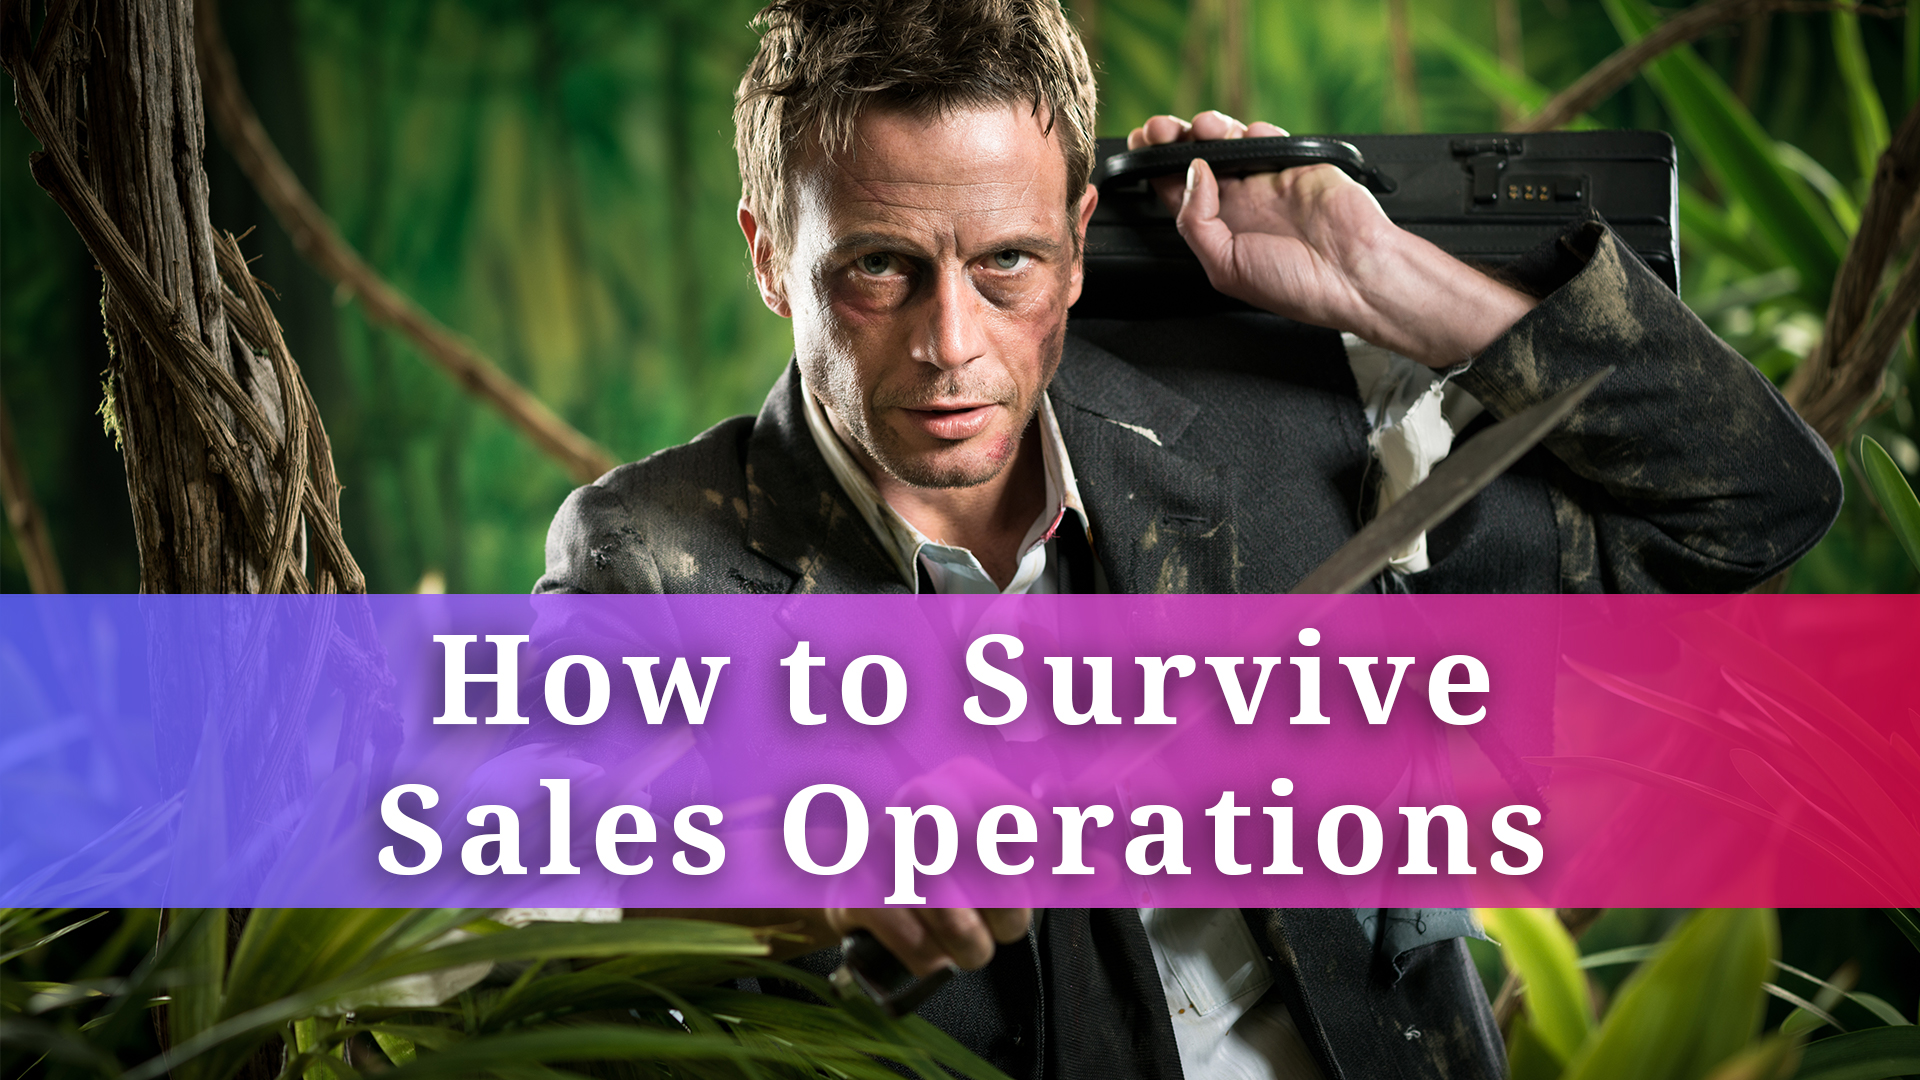 How To Survive Sales Operations